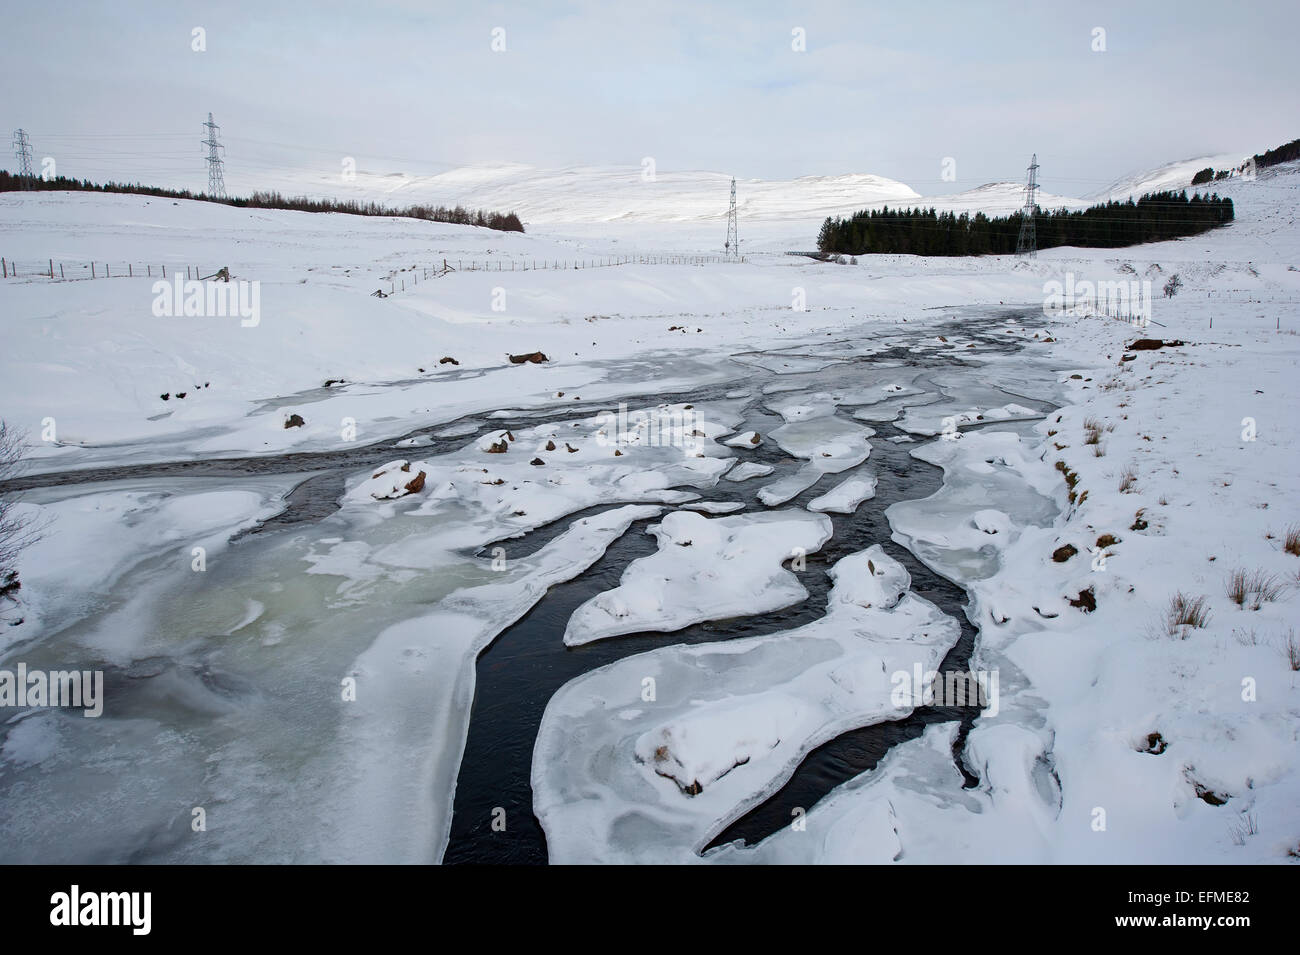 The River Spey in mid Winter frozen with only a trickle of water flow.  SCO 9542. - Stock Image